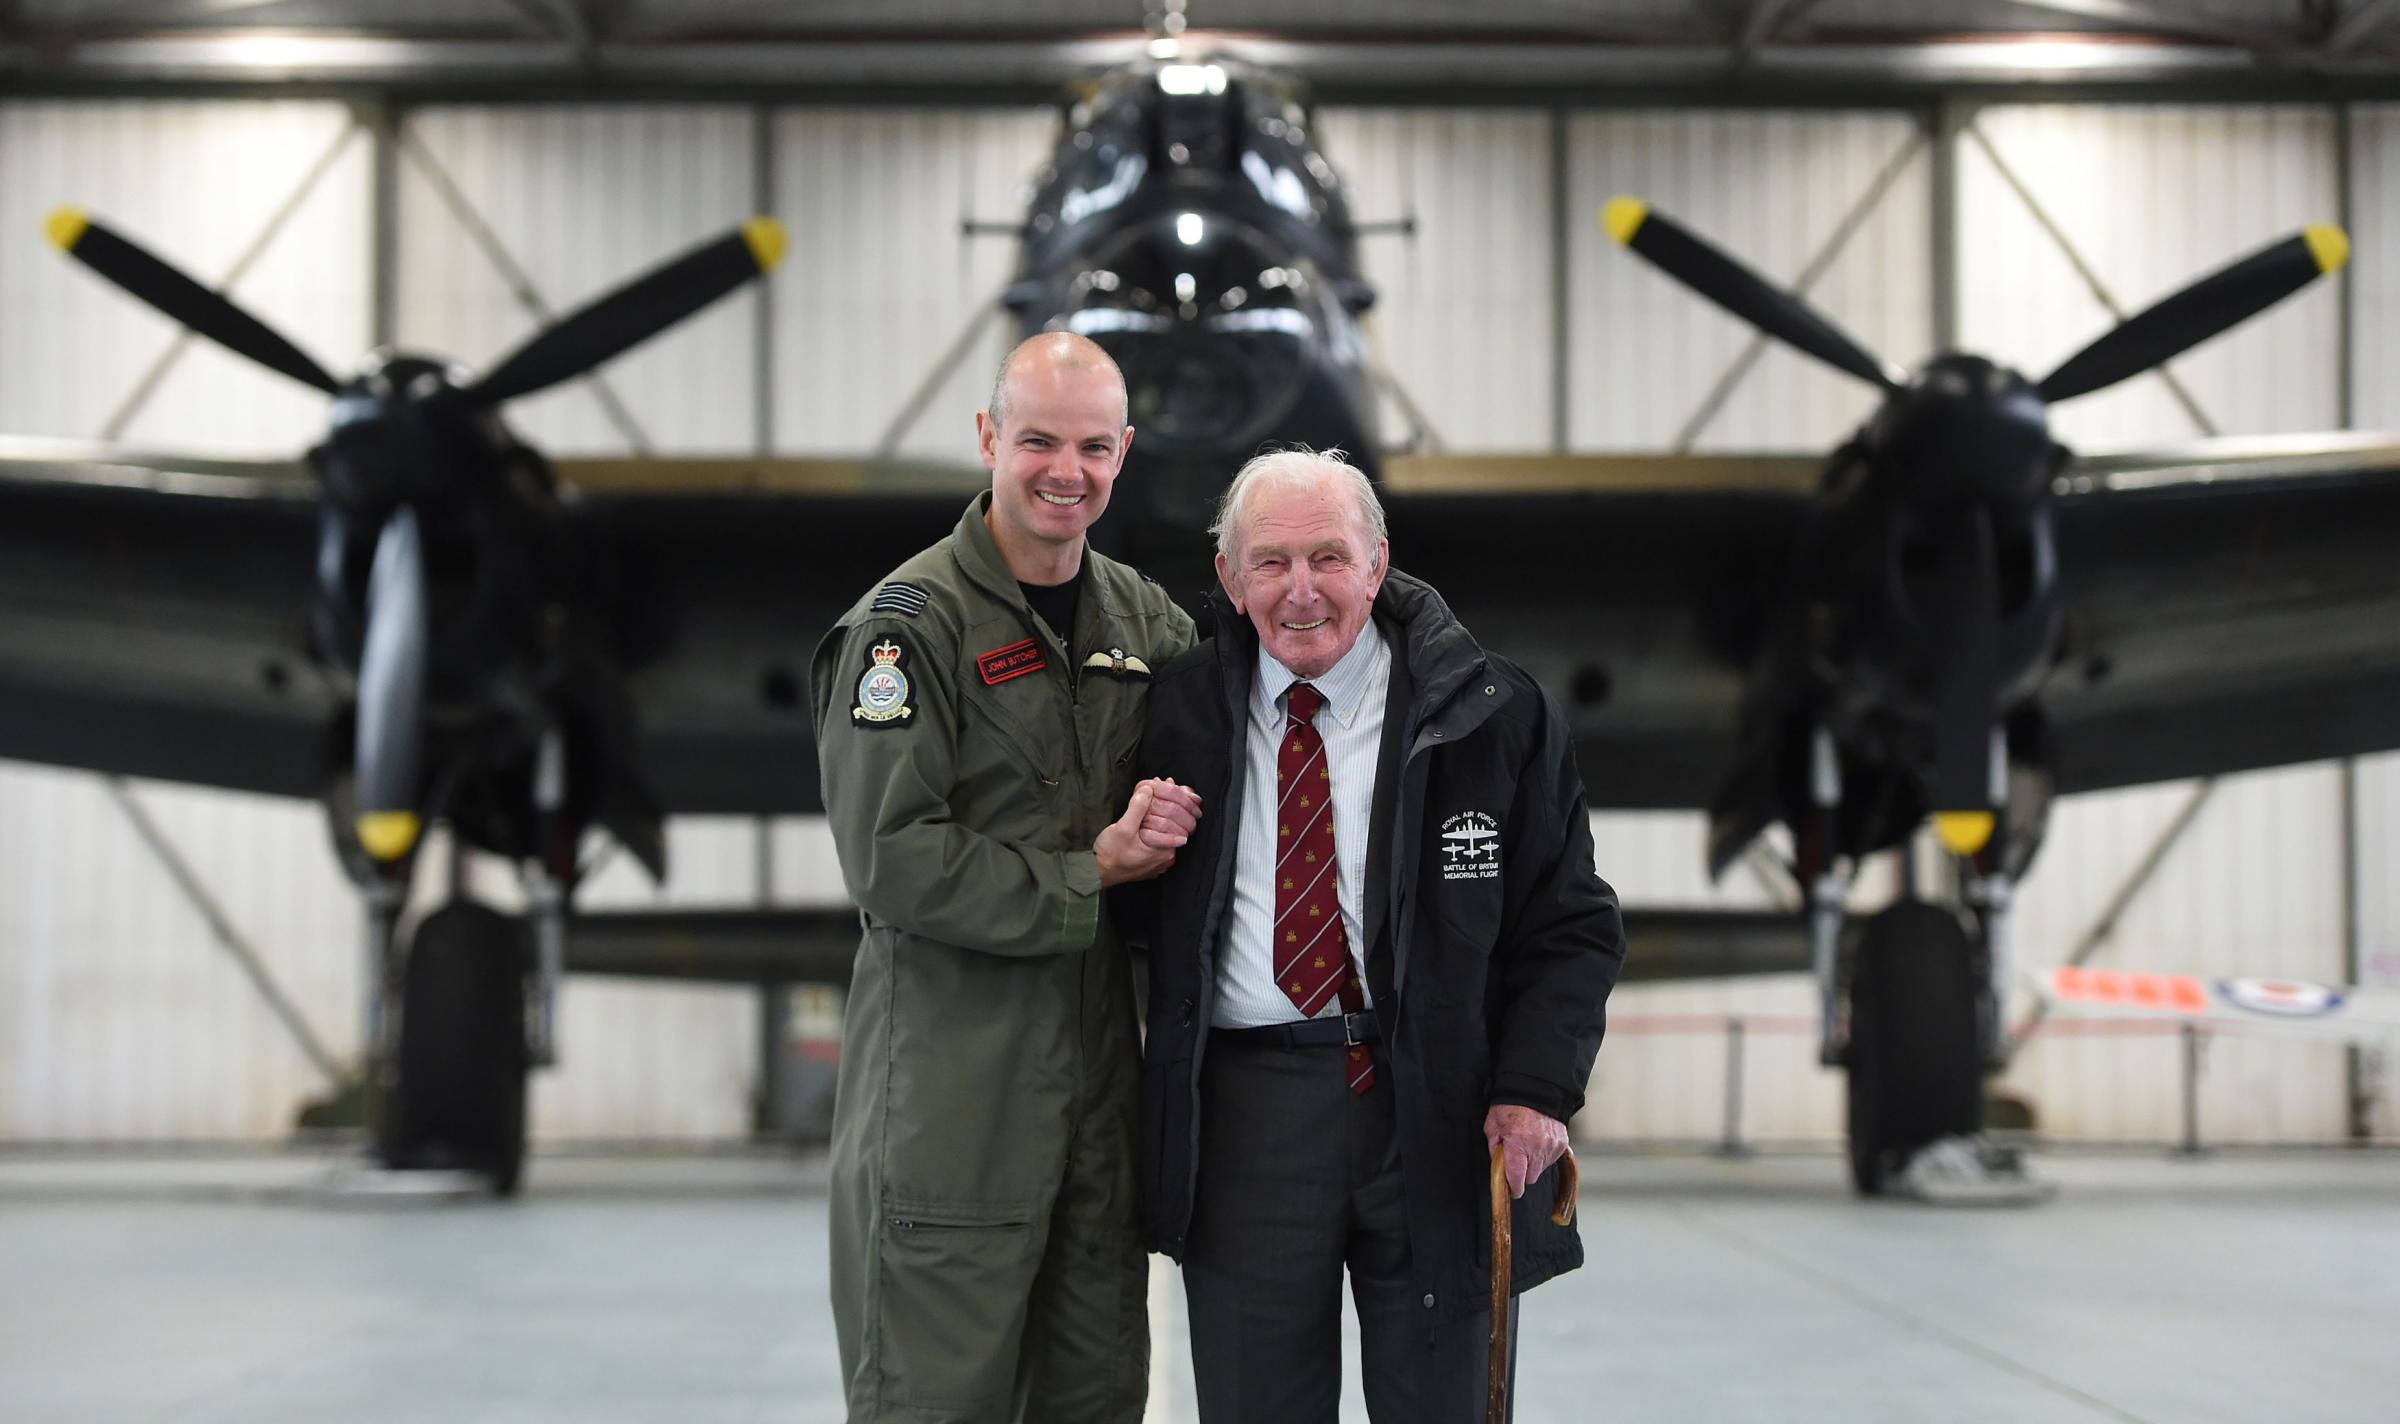 Wing Commander John Butcher (left) with Johnny Johnson, the last survivor of the original Dambusters of 617 Squadron, at RAF Coningsby, Lincolnshire. Picture: Joe Giddens/PA Wire